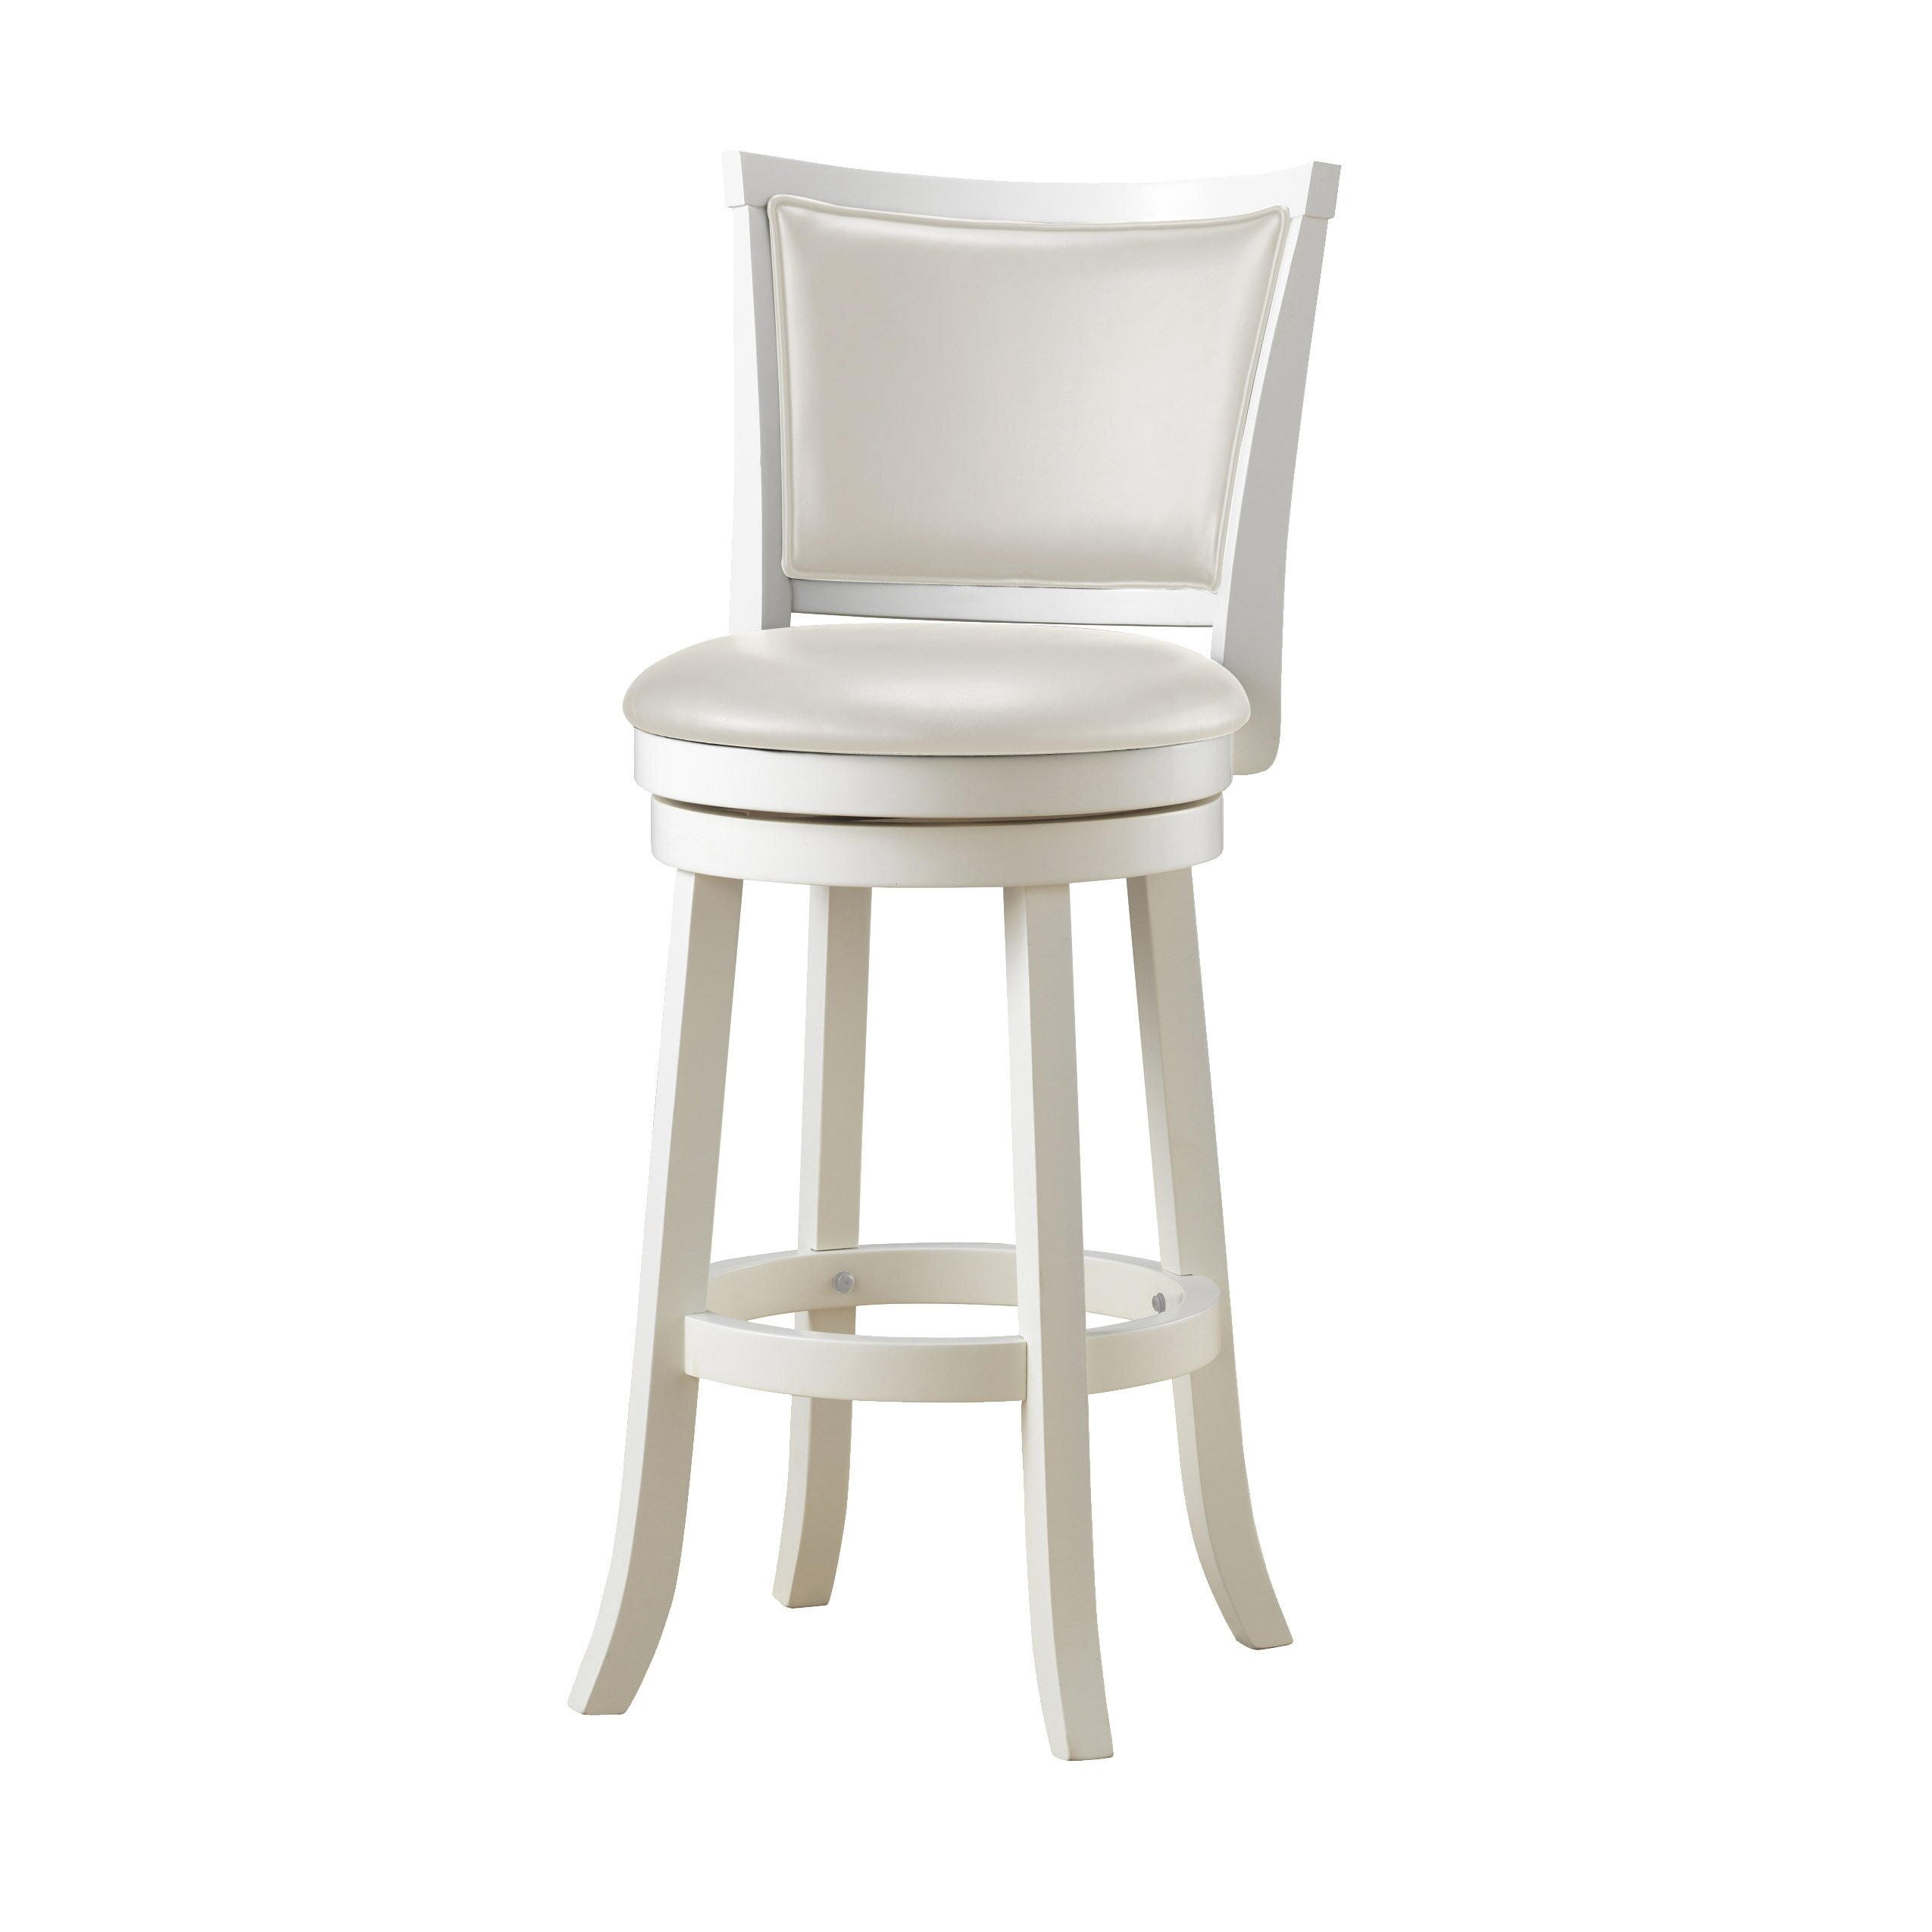 Amazing photo of  Woodgrove 29 Swivel Bar Stool with Cushion & Reviews Wayfair with #41372B color and 2550x2550 pixels